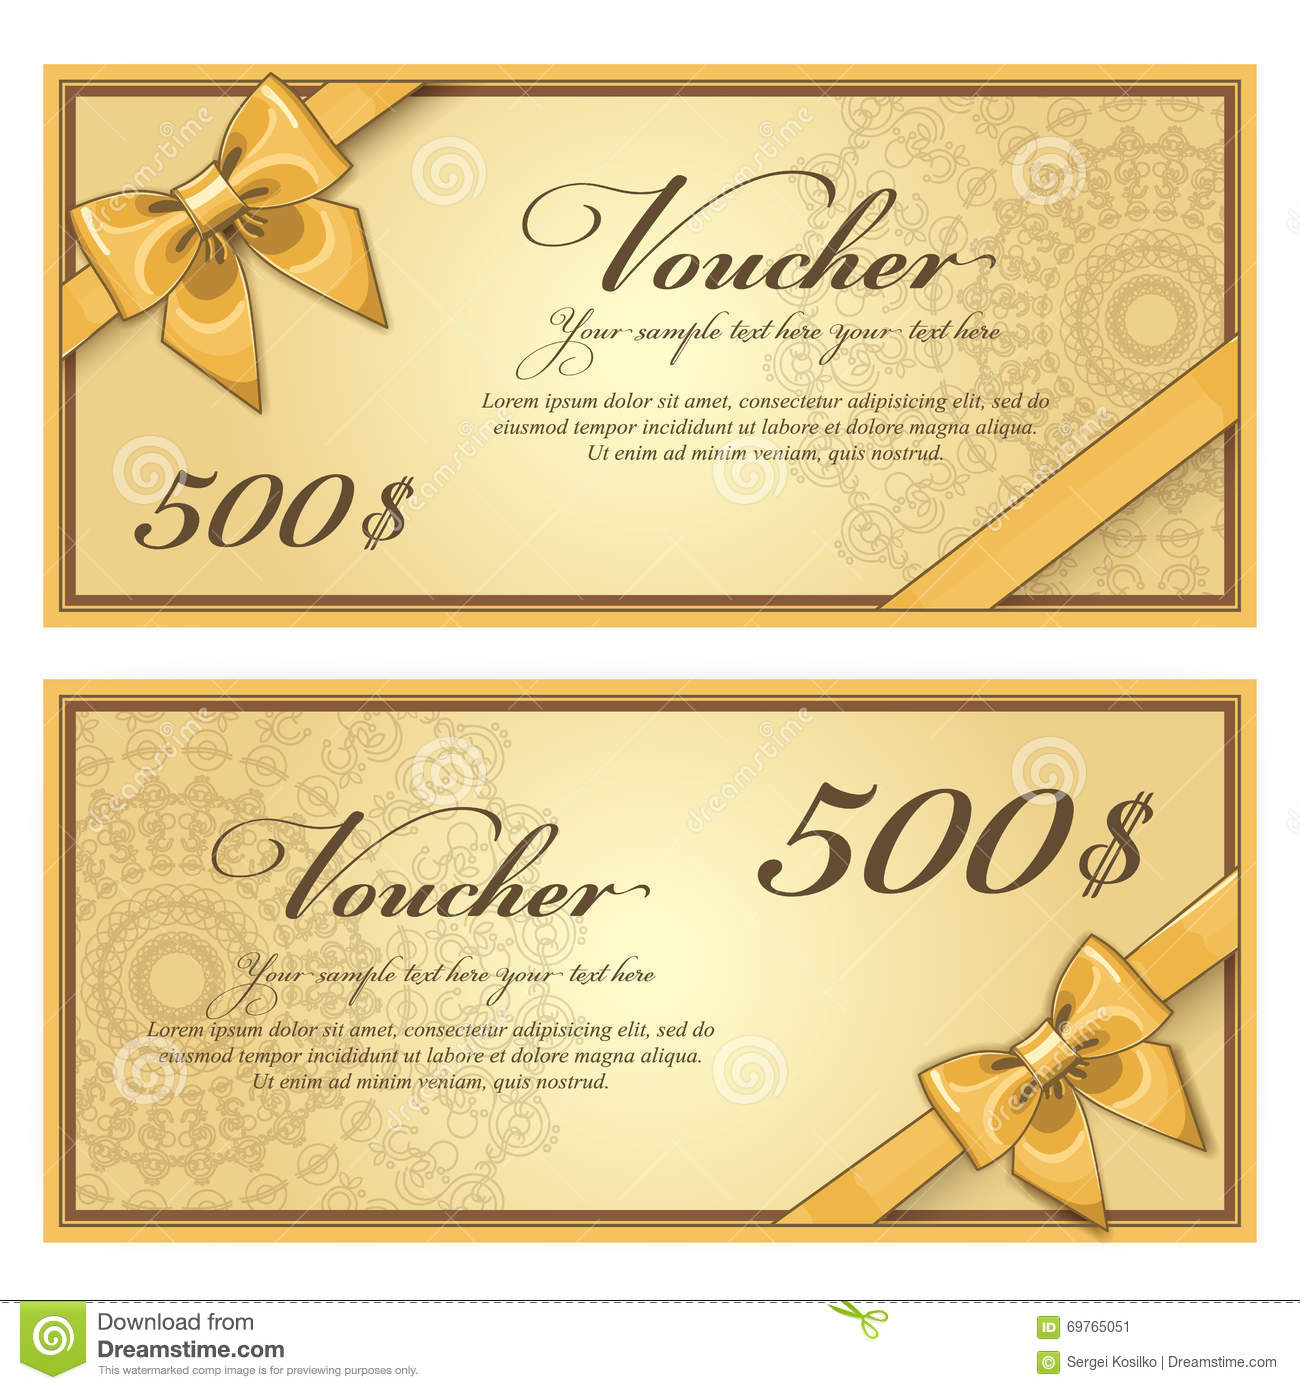 Lunch Voucher Template Yun56co Gift Voucher Template Vector Layout Discount  Special Offer Coupon Business Bow Gold  Fun Voucher Template